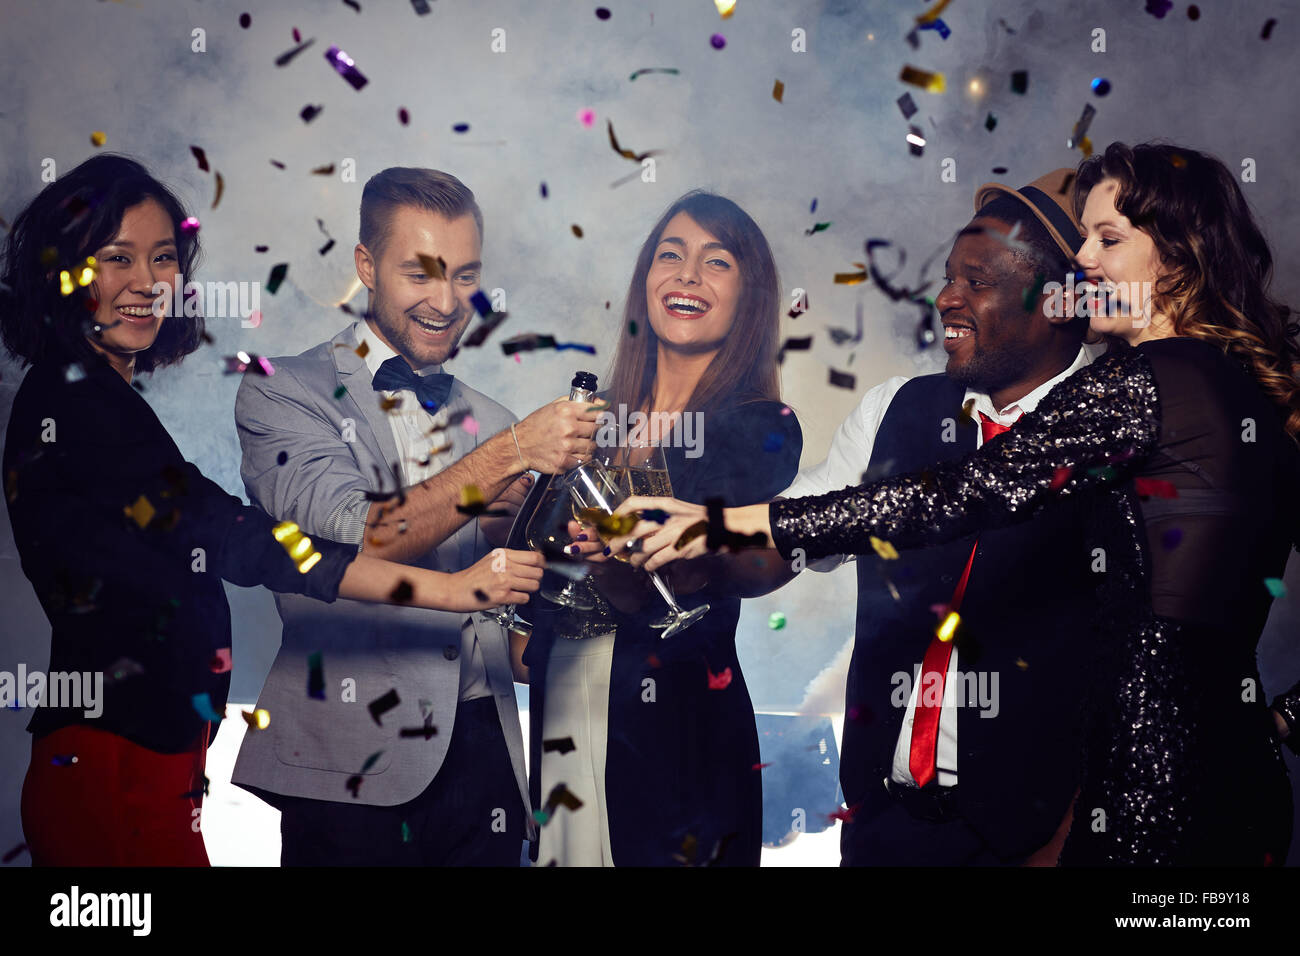 Cheerful friends toasting with champagne at New Year's Eve party - Stock Image